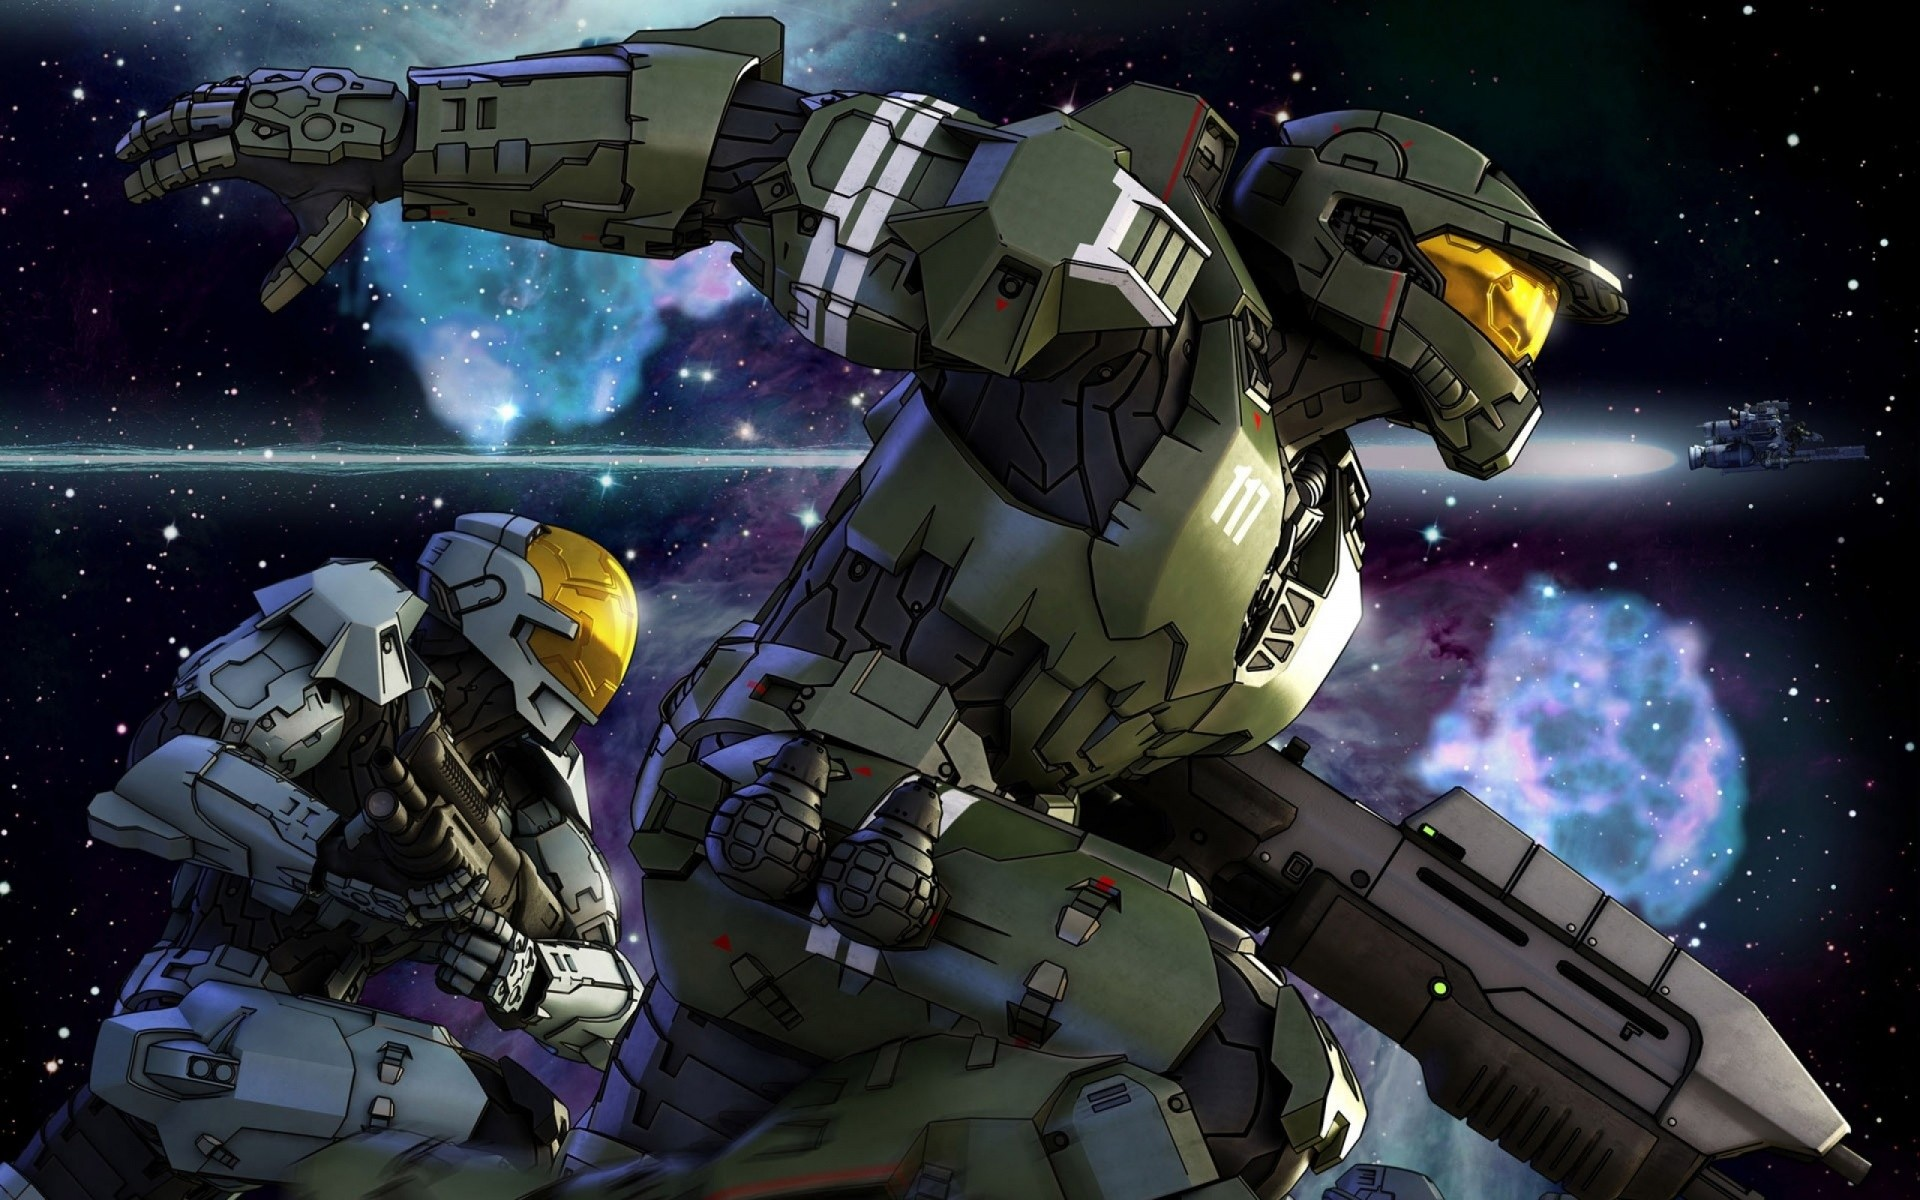 1920x1200 Halo Spartans How To Set Wallpaper On Your Desktop Click The